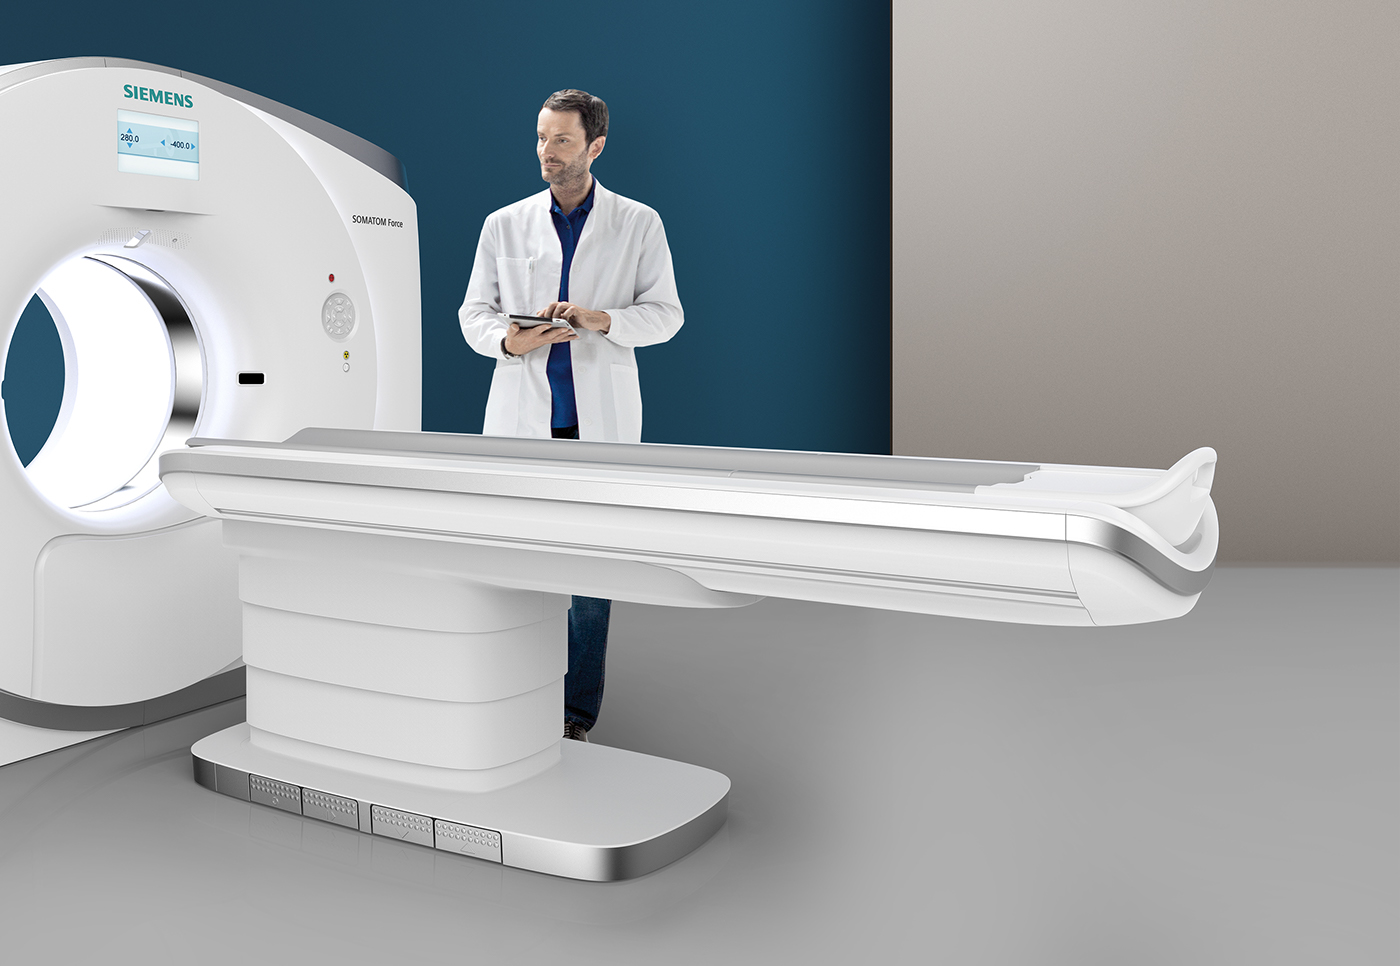 Adobe Portfolio Computed Tomography x-ray medical healthcare ct scanner patient care doctor hospital